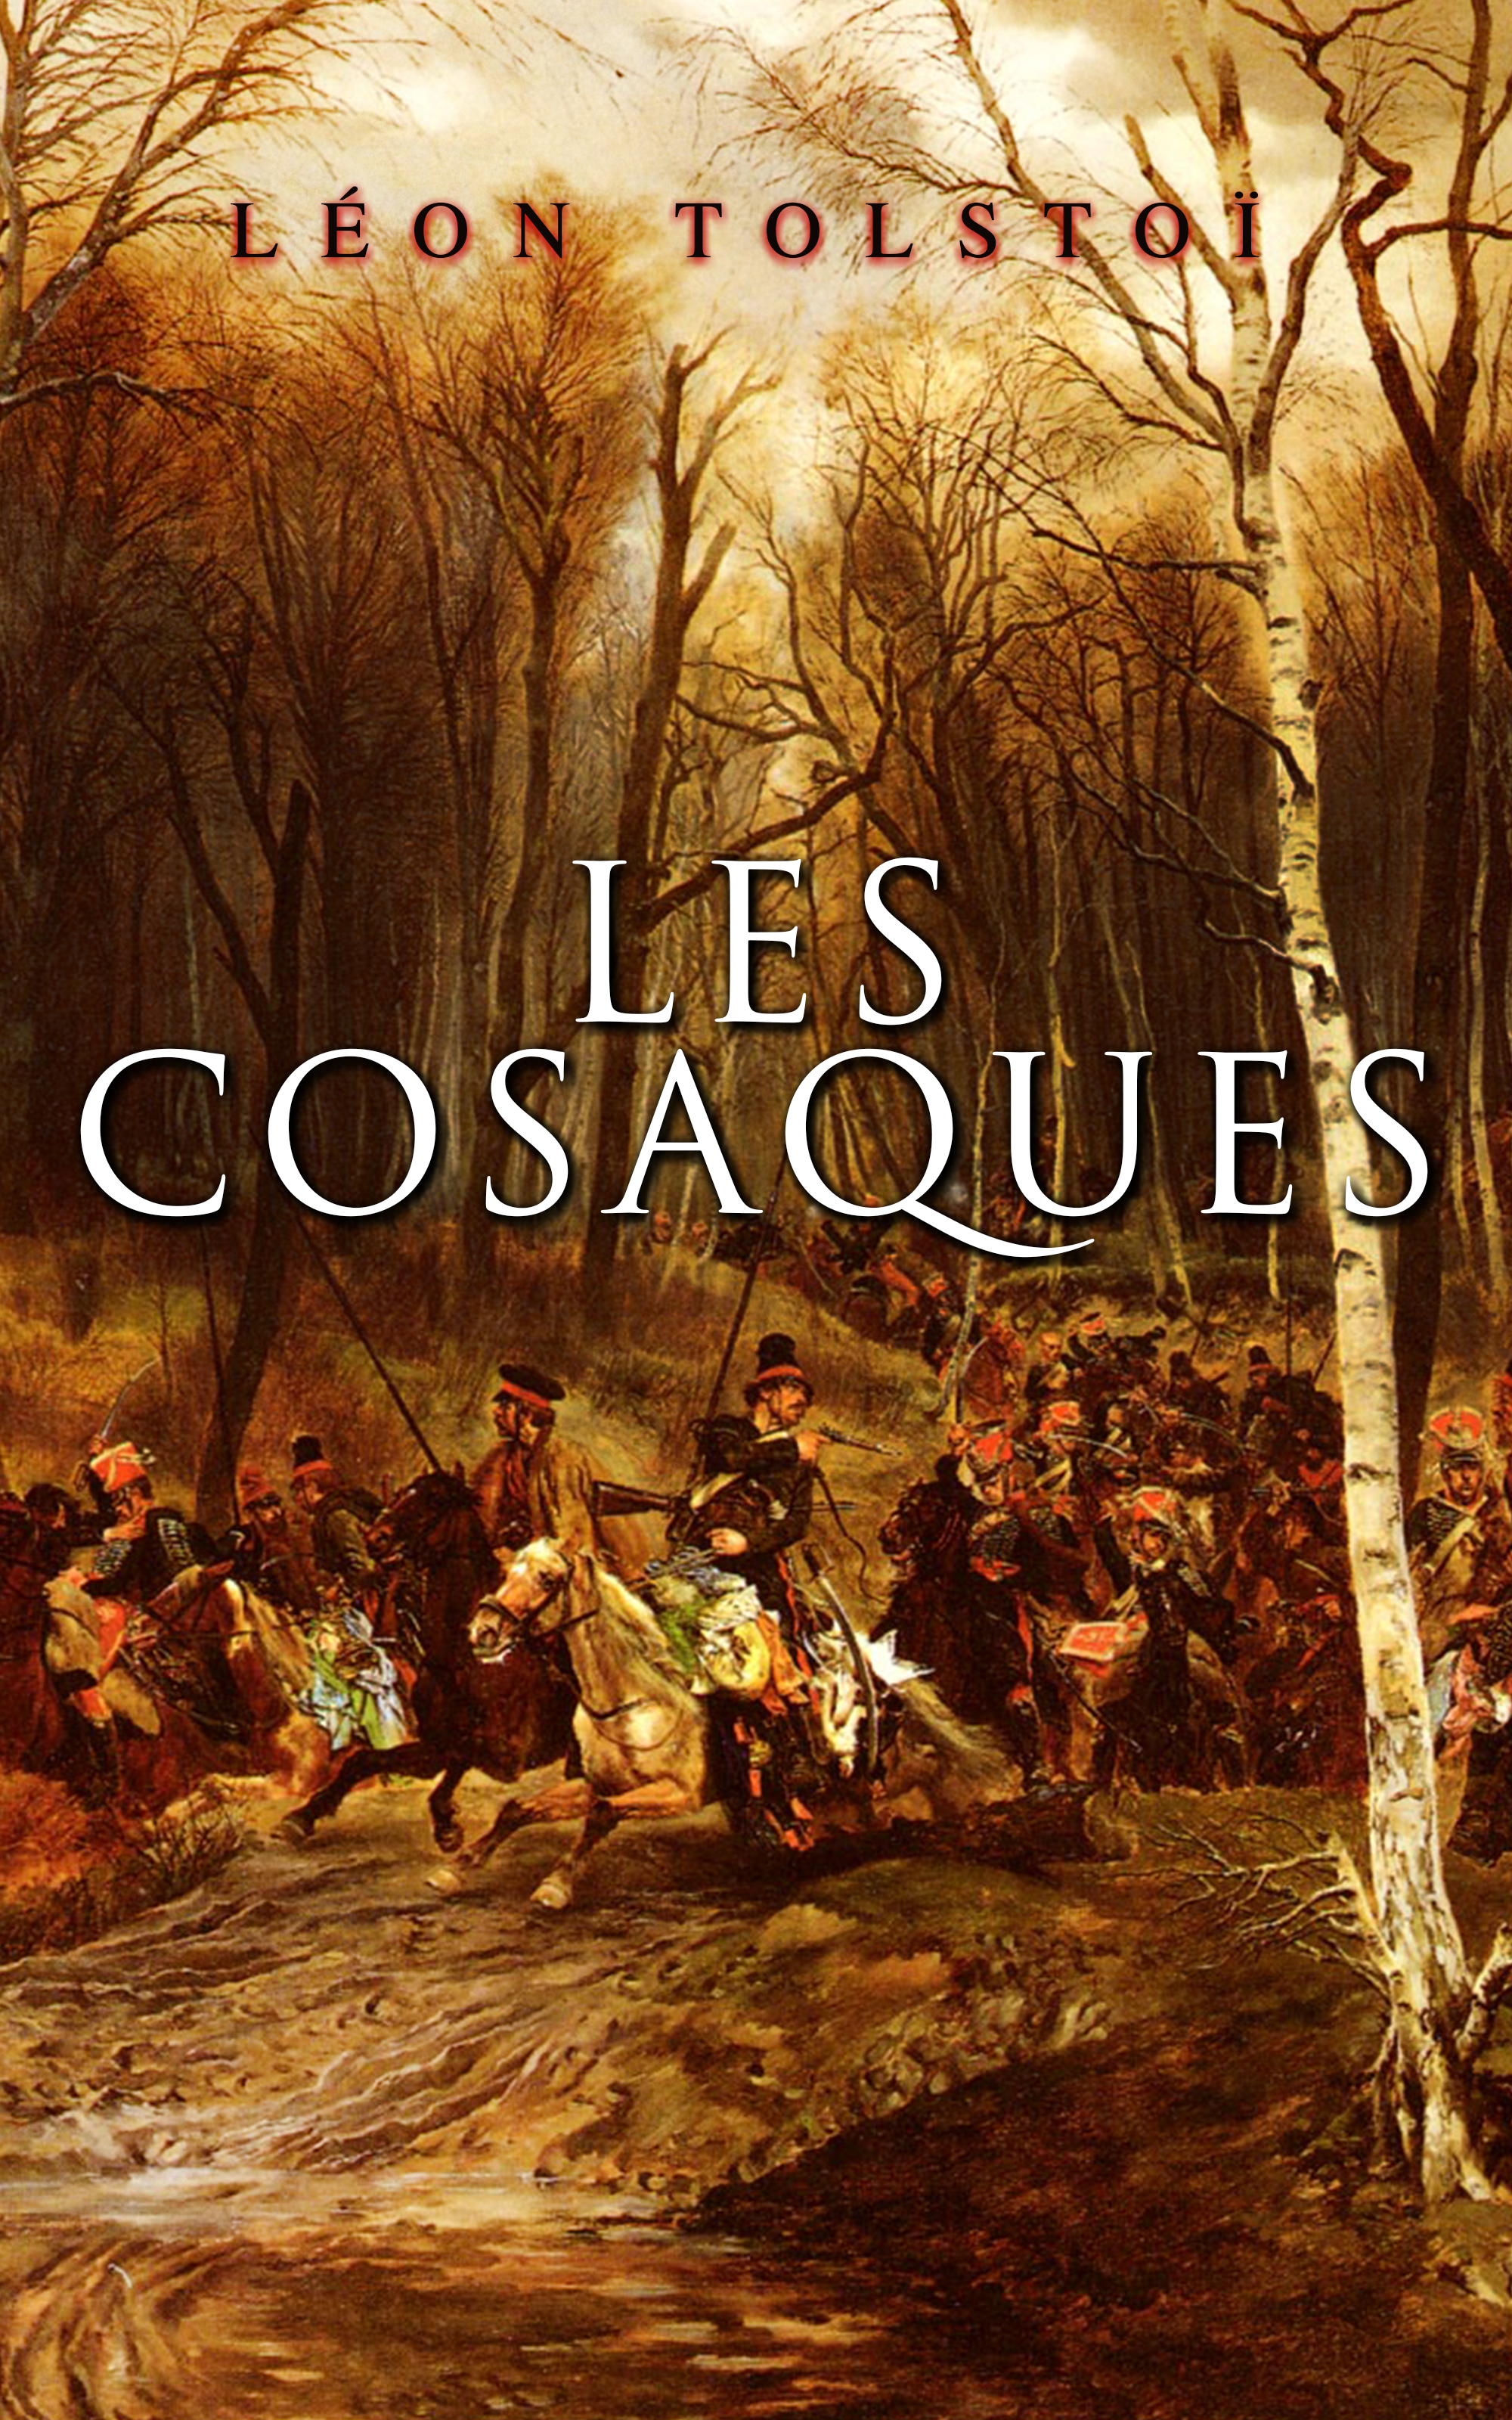 Leon Tolstoi Les Cosaques лев толстой tolstoi for the young select tales from tolstoi